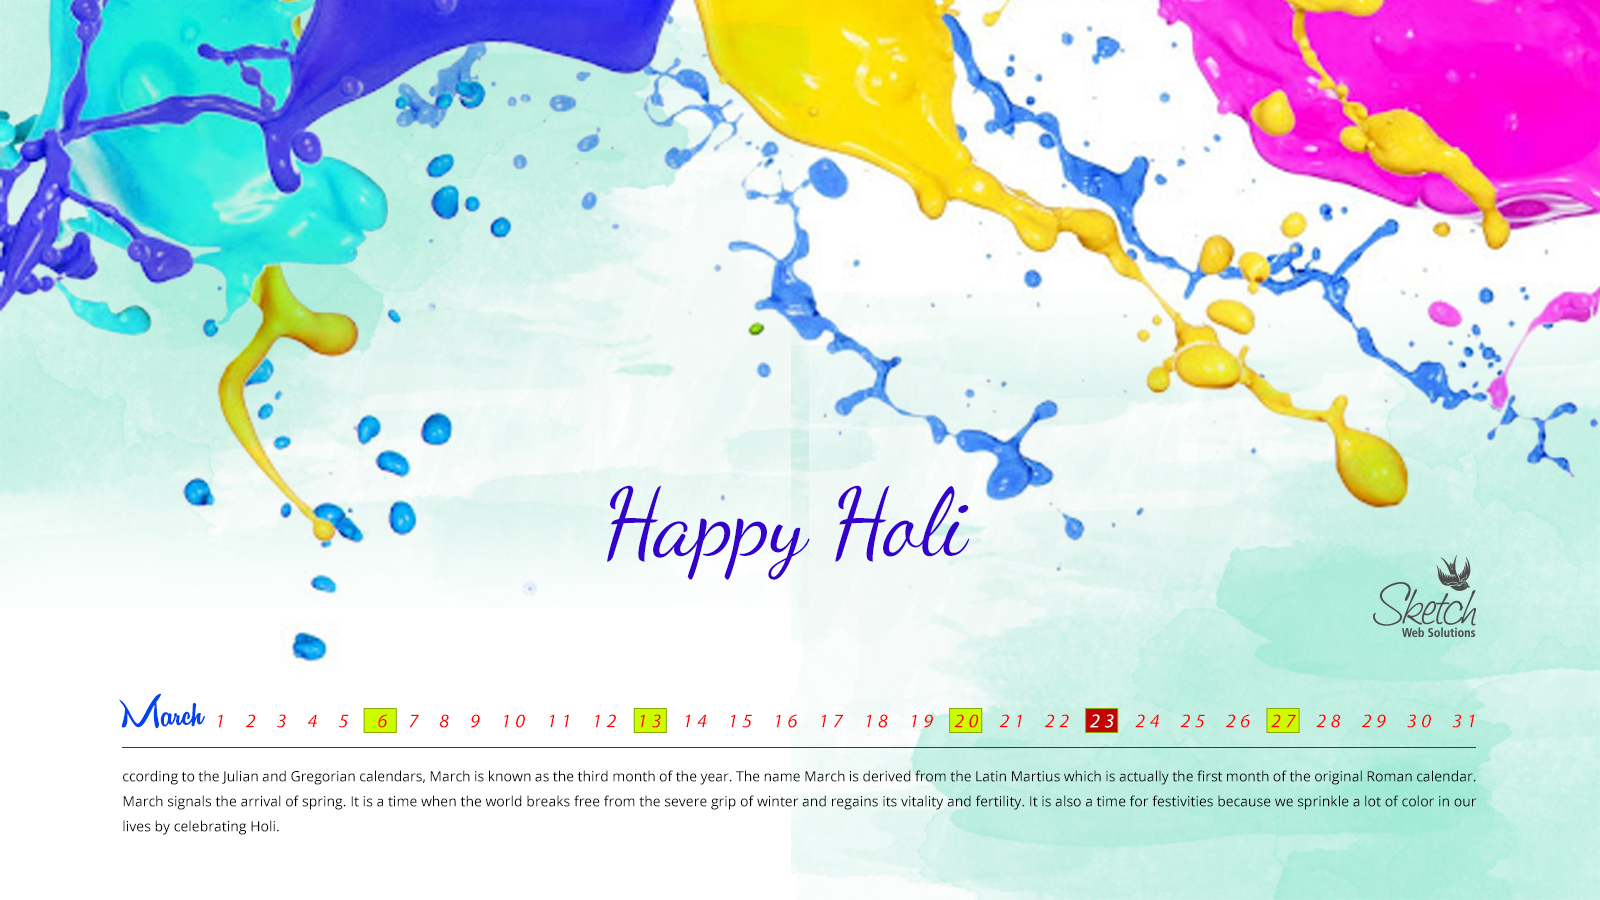 Happy Holi 1